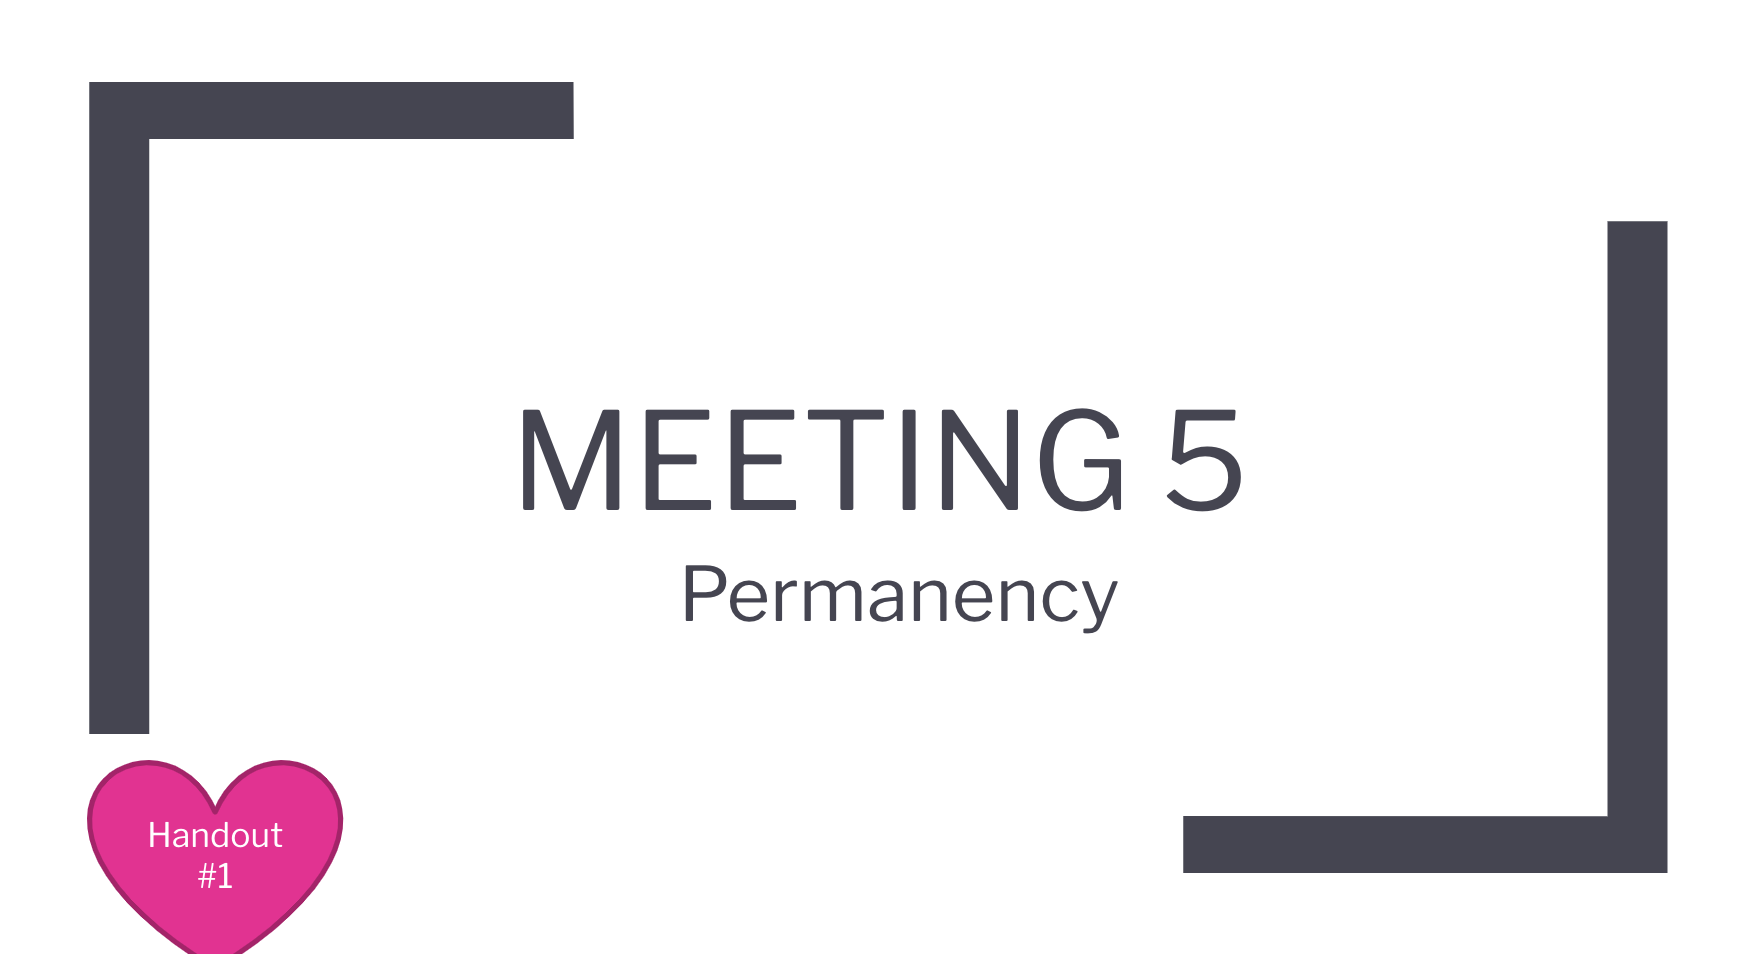 Meeting 5 Permanency